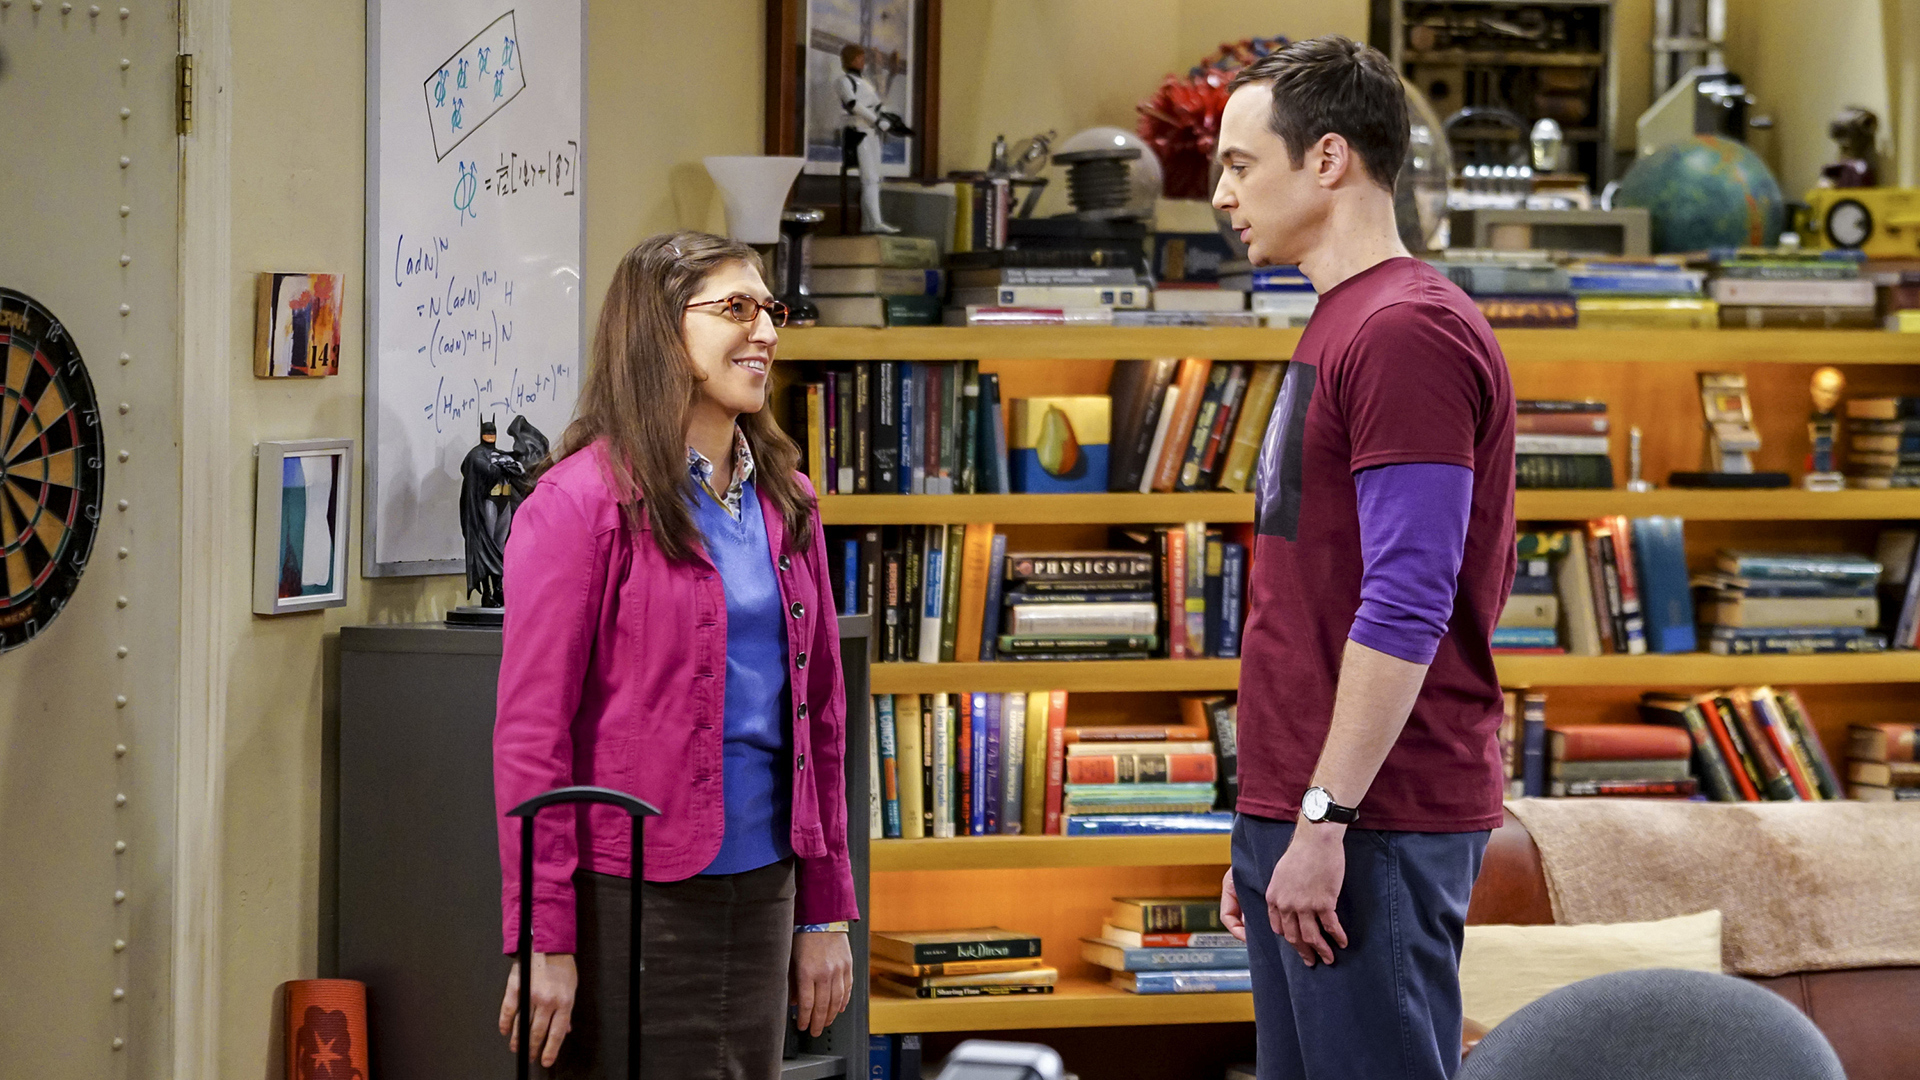 Amy and Sheldon try to say goodbye in a dignified manner...